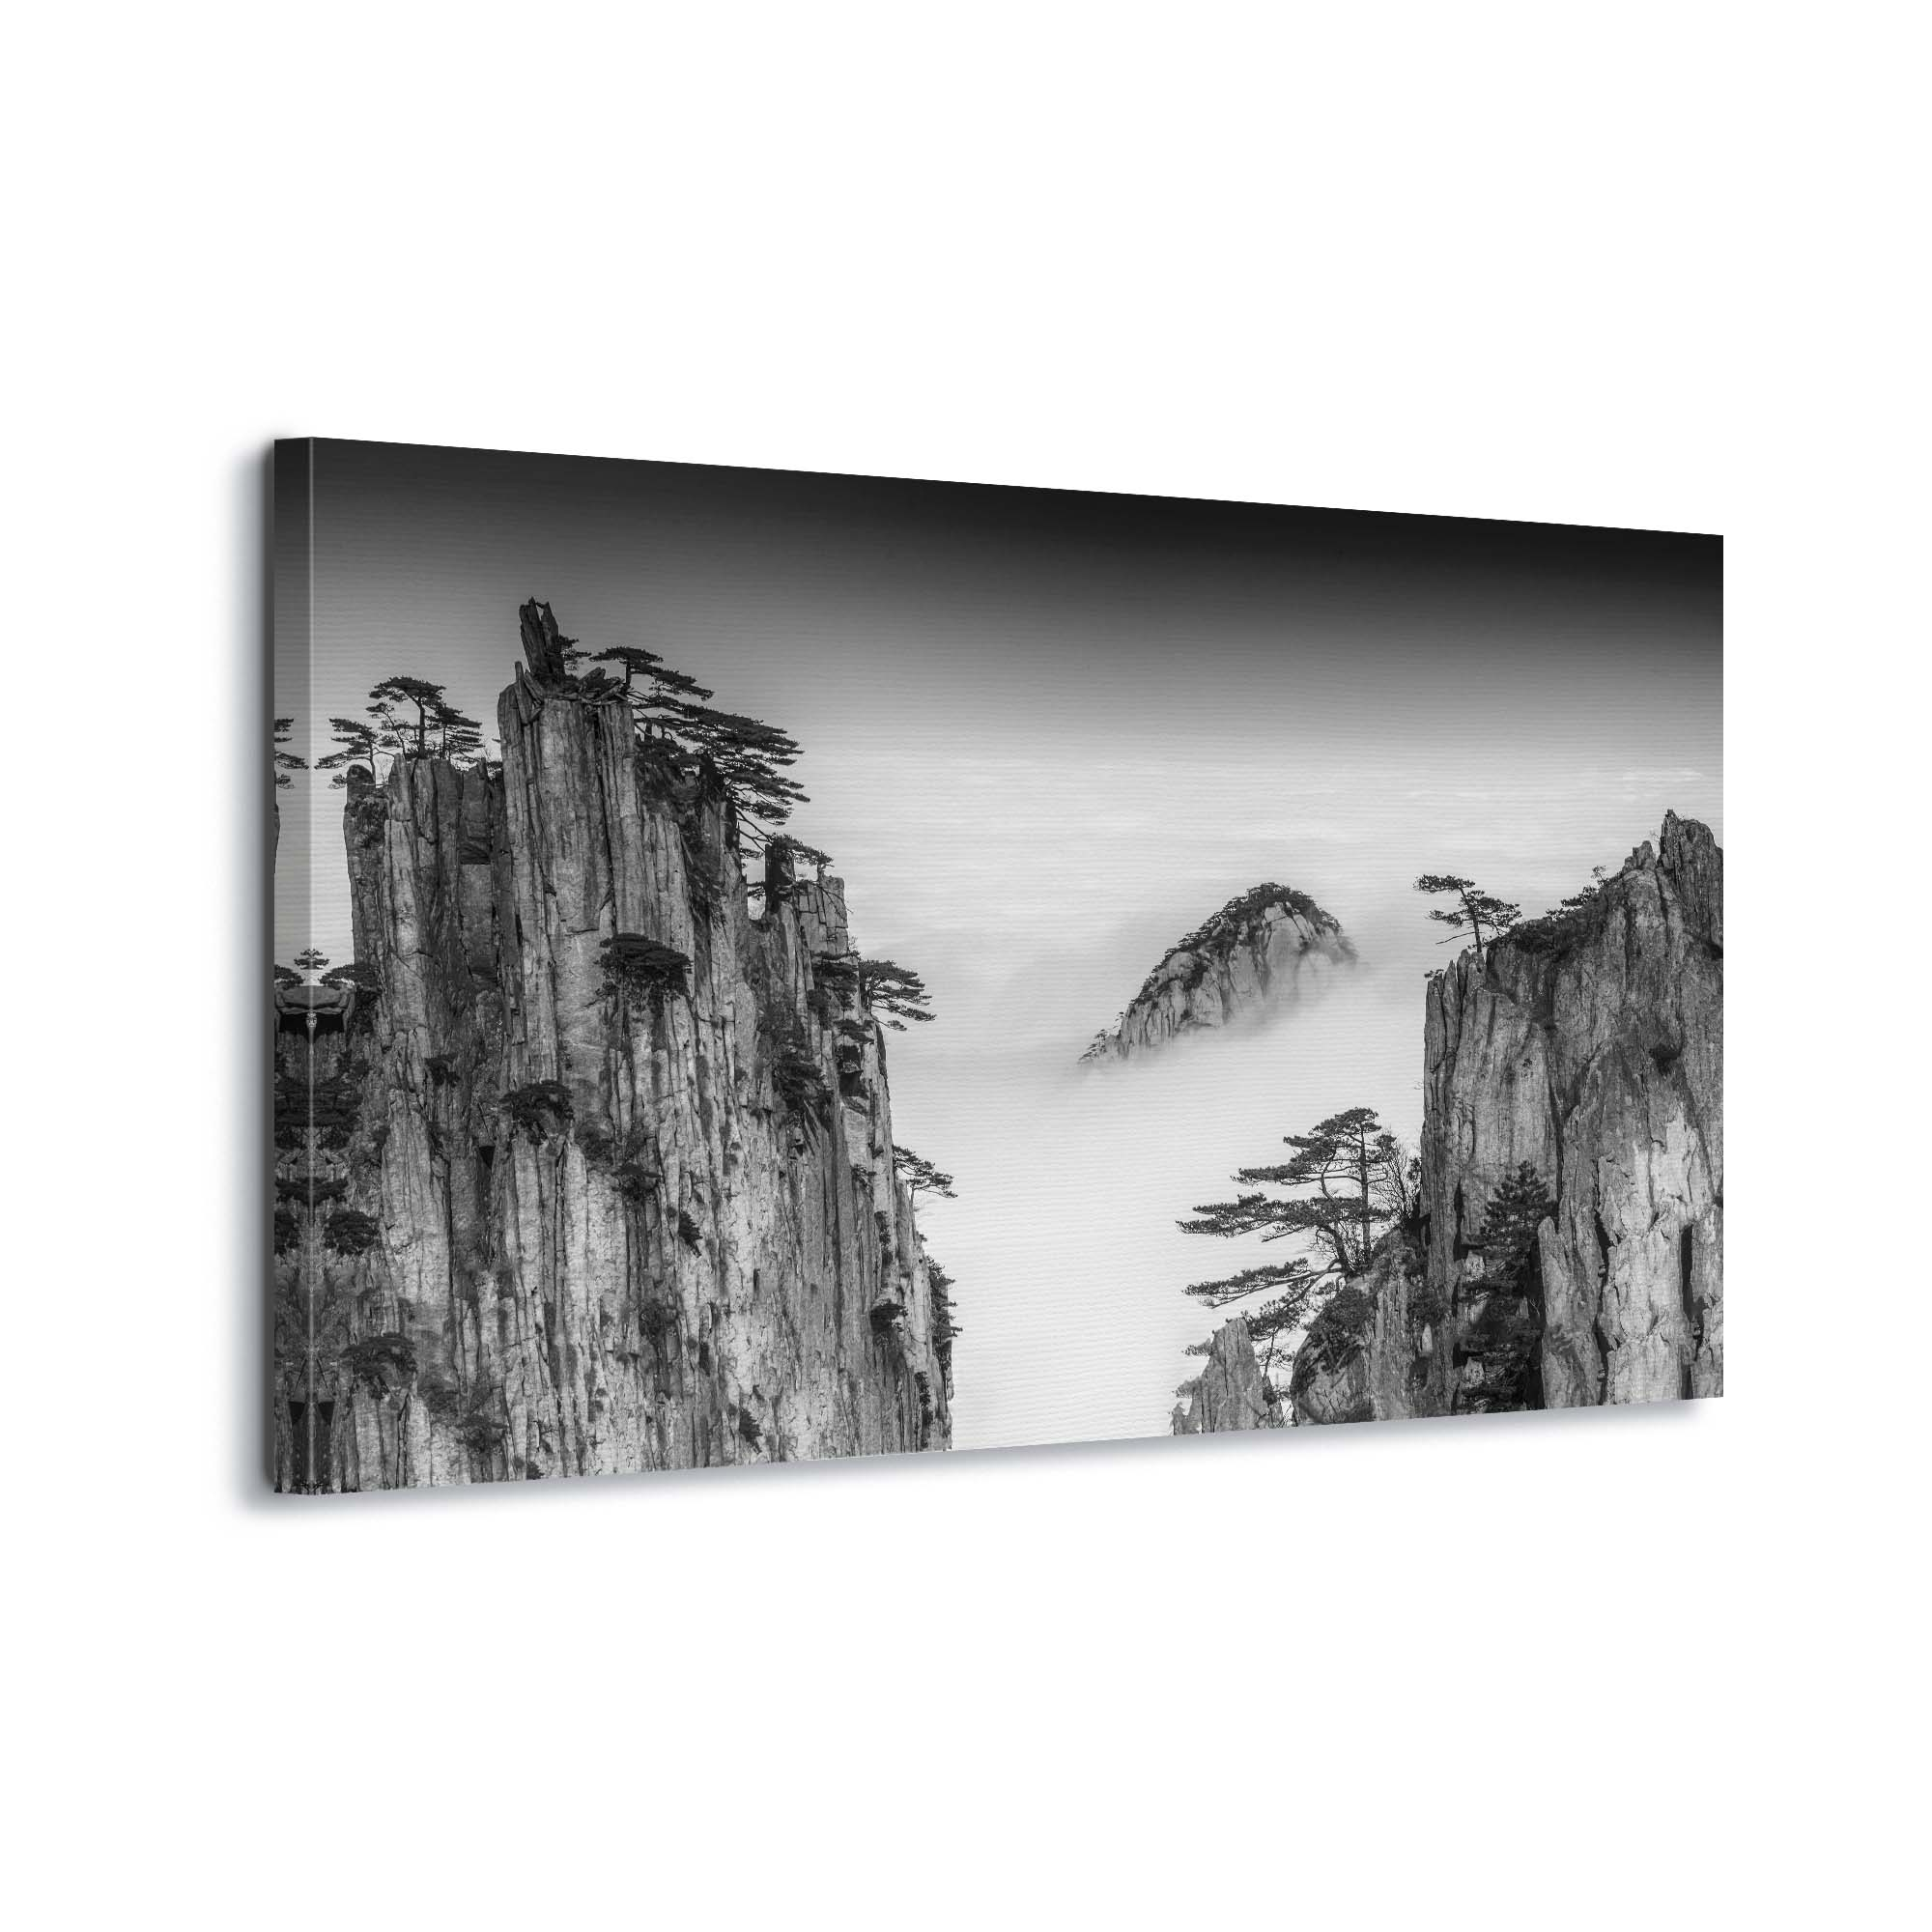 Huangshan by Chenzhe